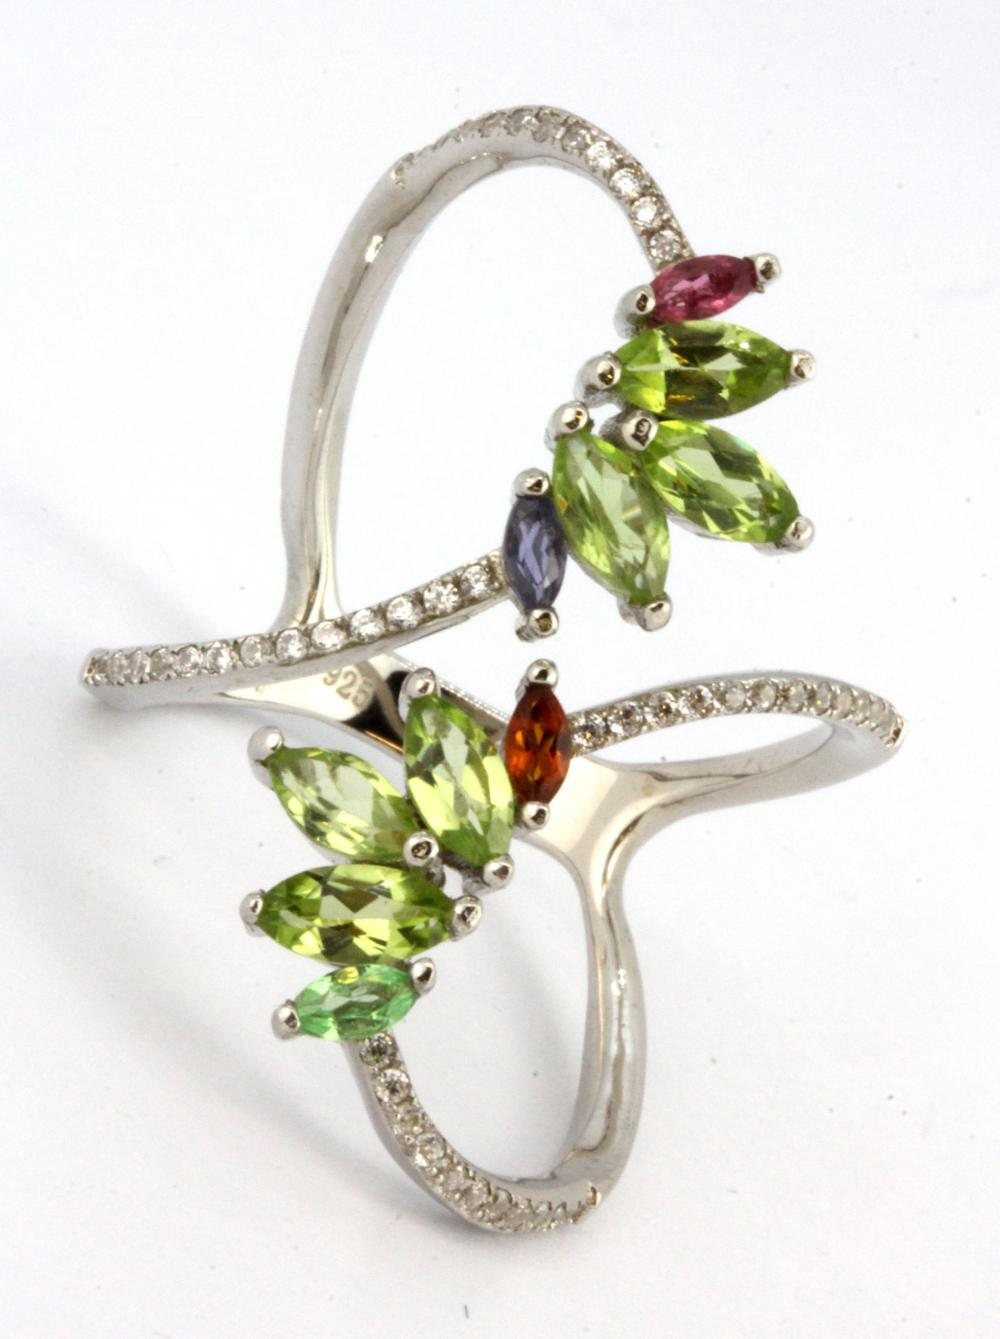 A 925 silver ring set with marquise cut peridots and other semi-precious stones, (T).